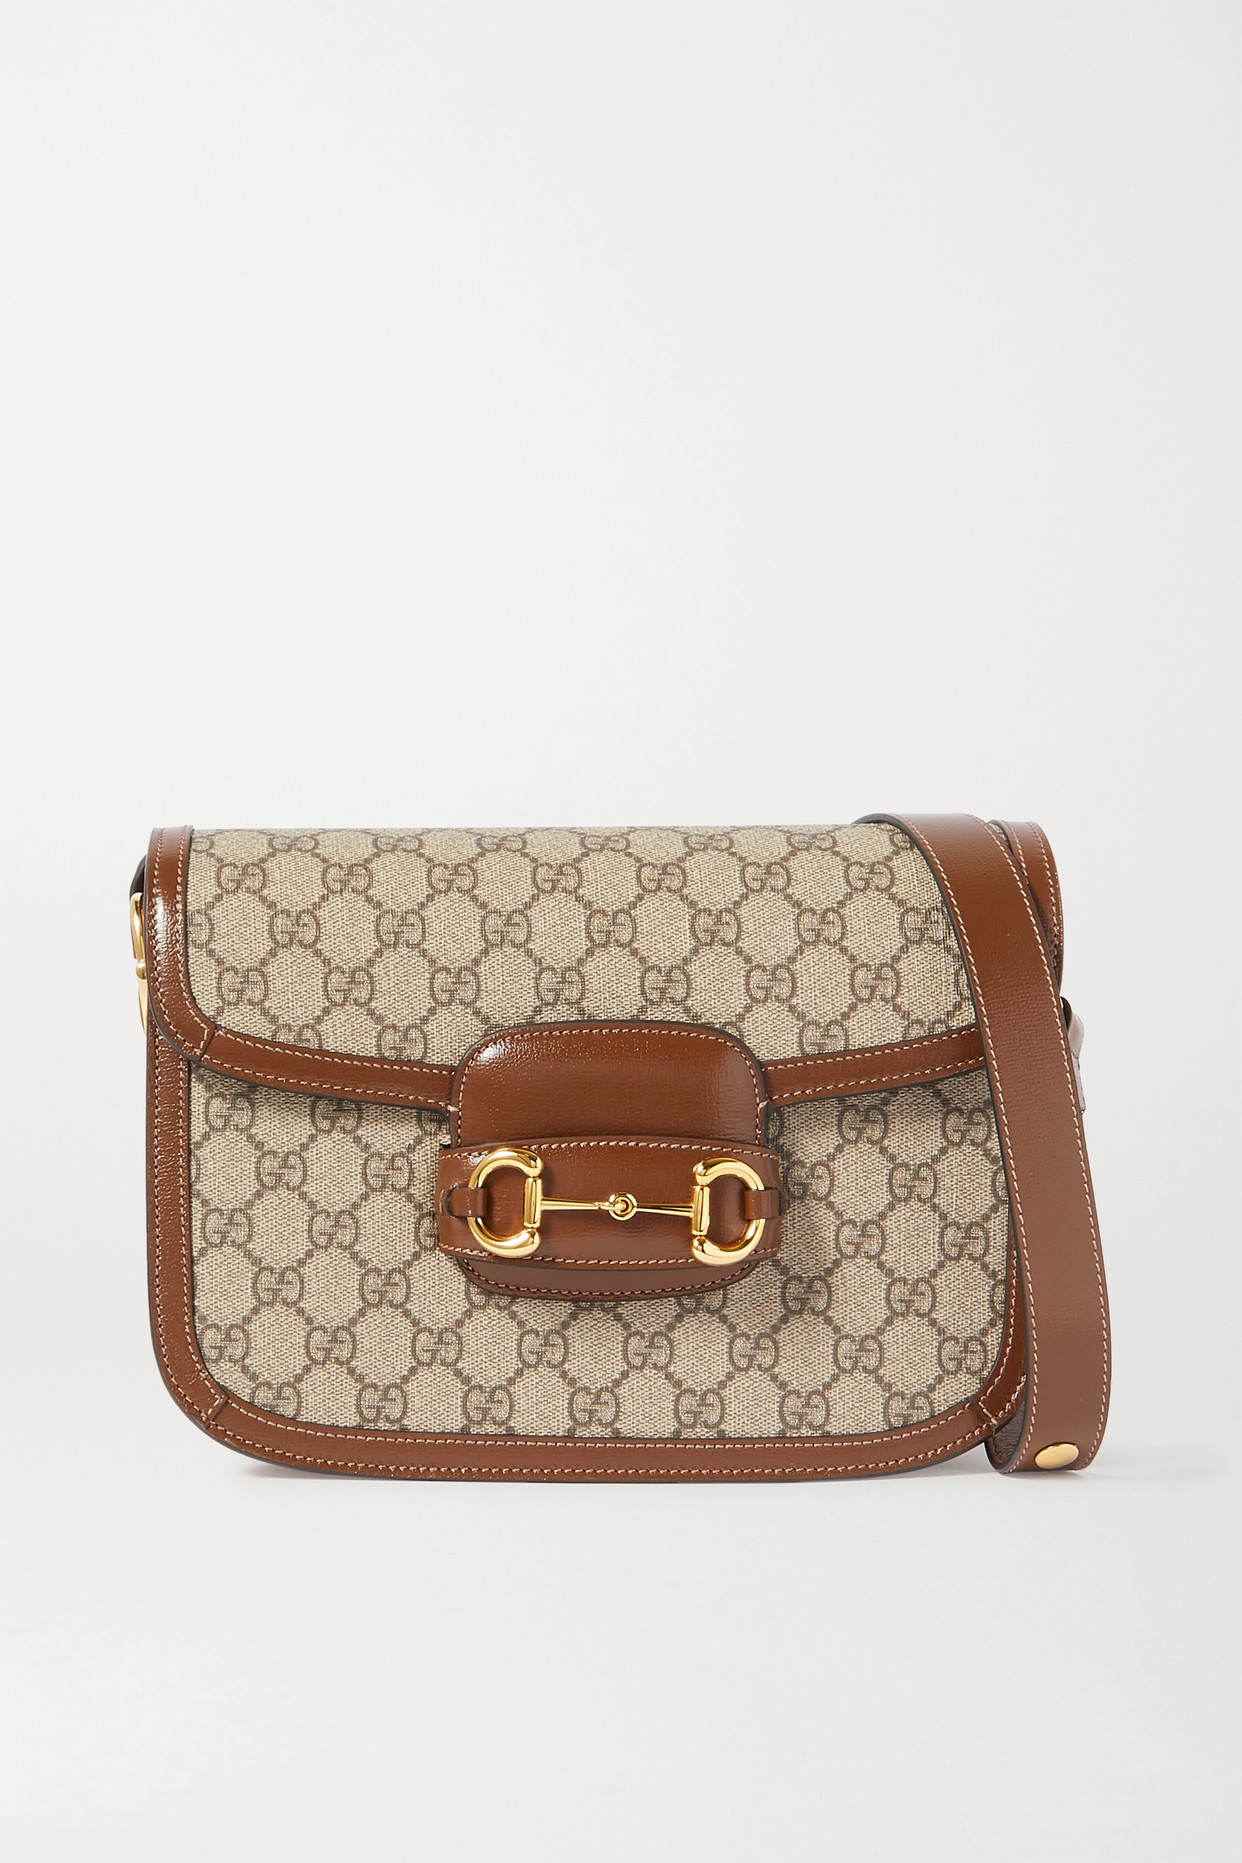 GUCCI - 1955 Horsebit-detailed Leather-trimmed Printed Coated-canvas Shoulder Bag - Brown - one size